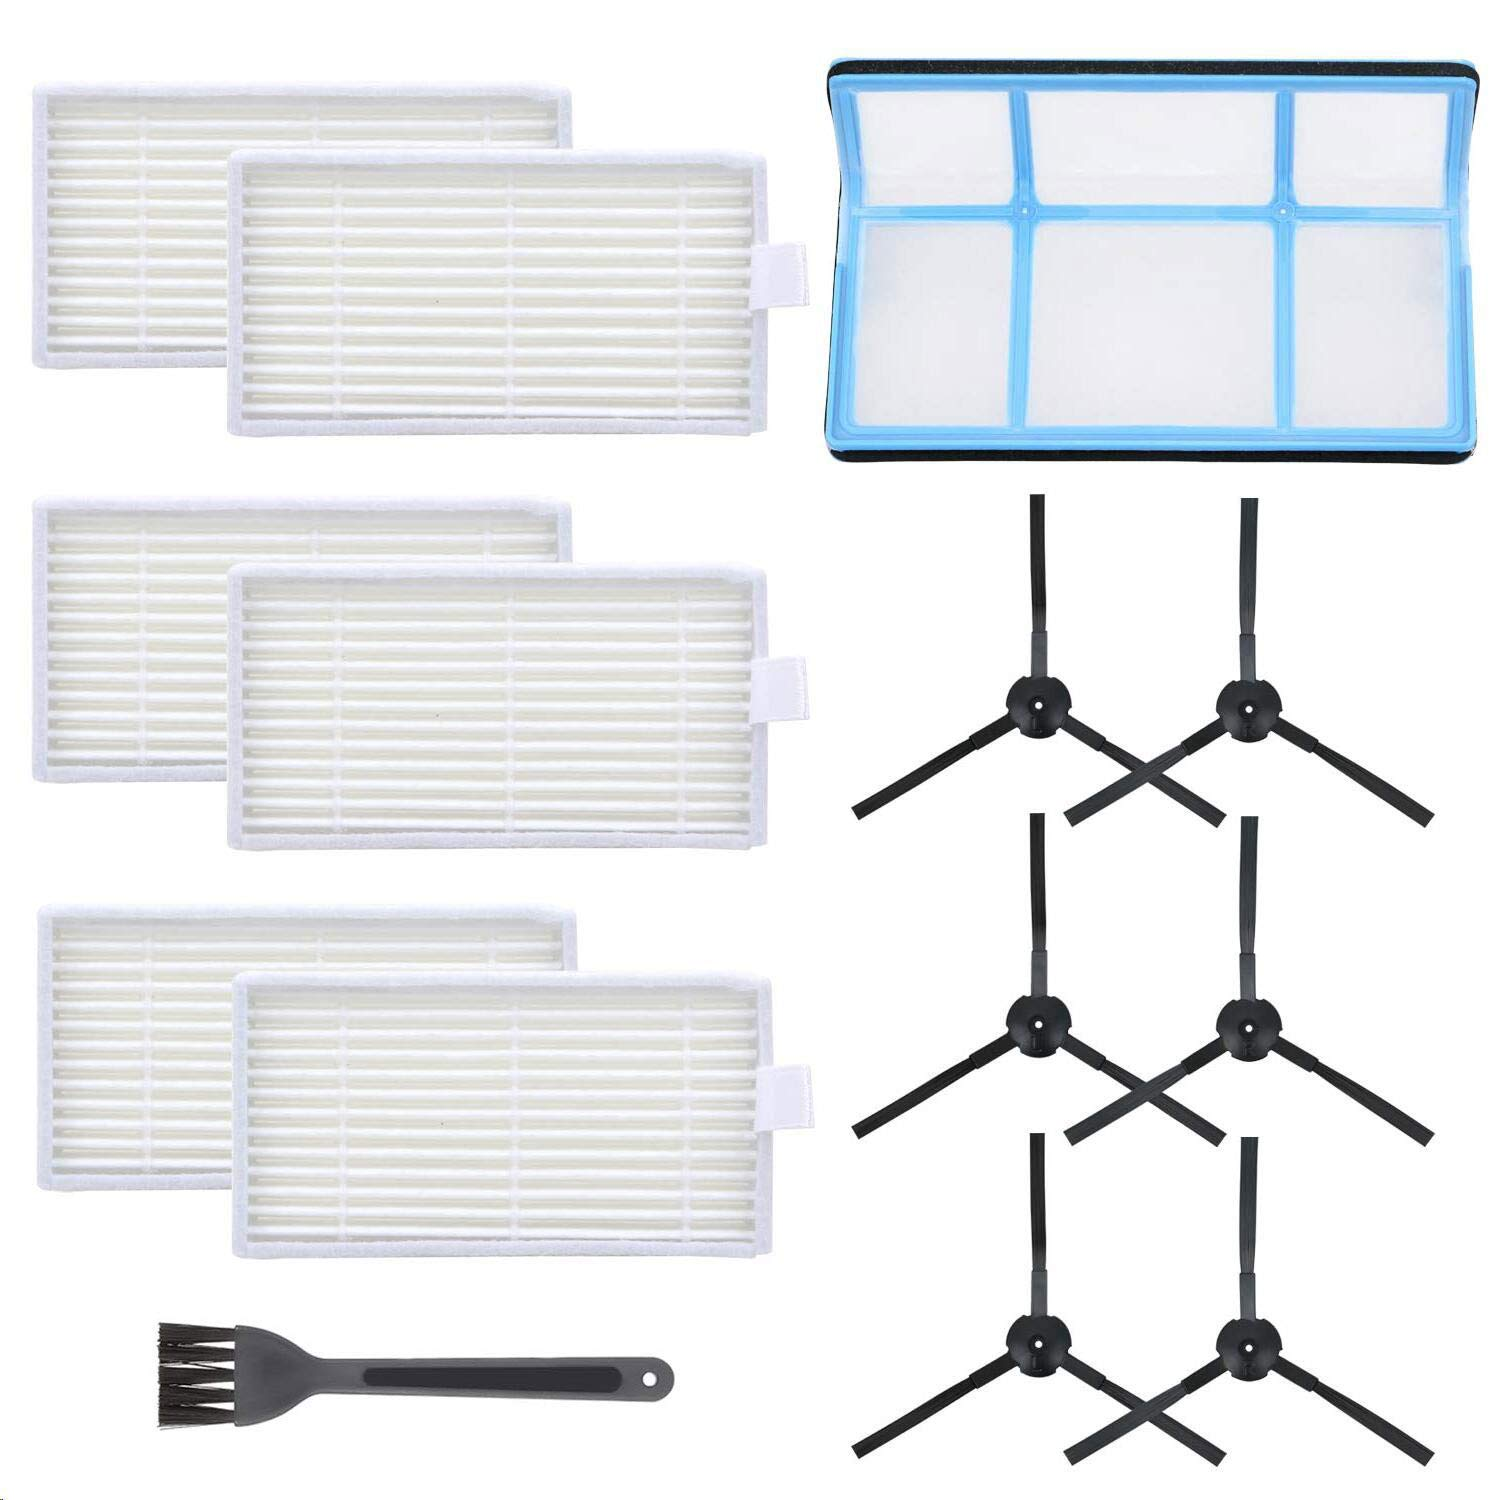 Mochenli Vacuum Filter Kit Replacement for Robotic Vacuum ILIFE V3 V3S V5 V5s, Pro Robot Vacuum Cleaner 6 Filters and 6 Side Brushes and 1 Primary Filter (Pack of 13) 7102BypMAYKL